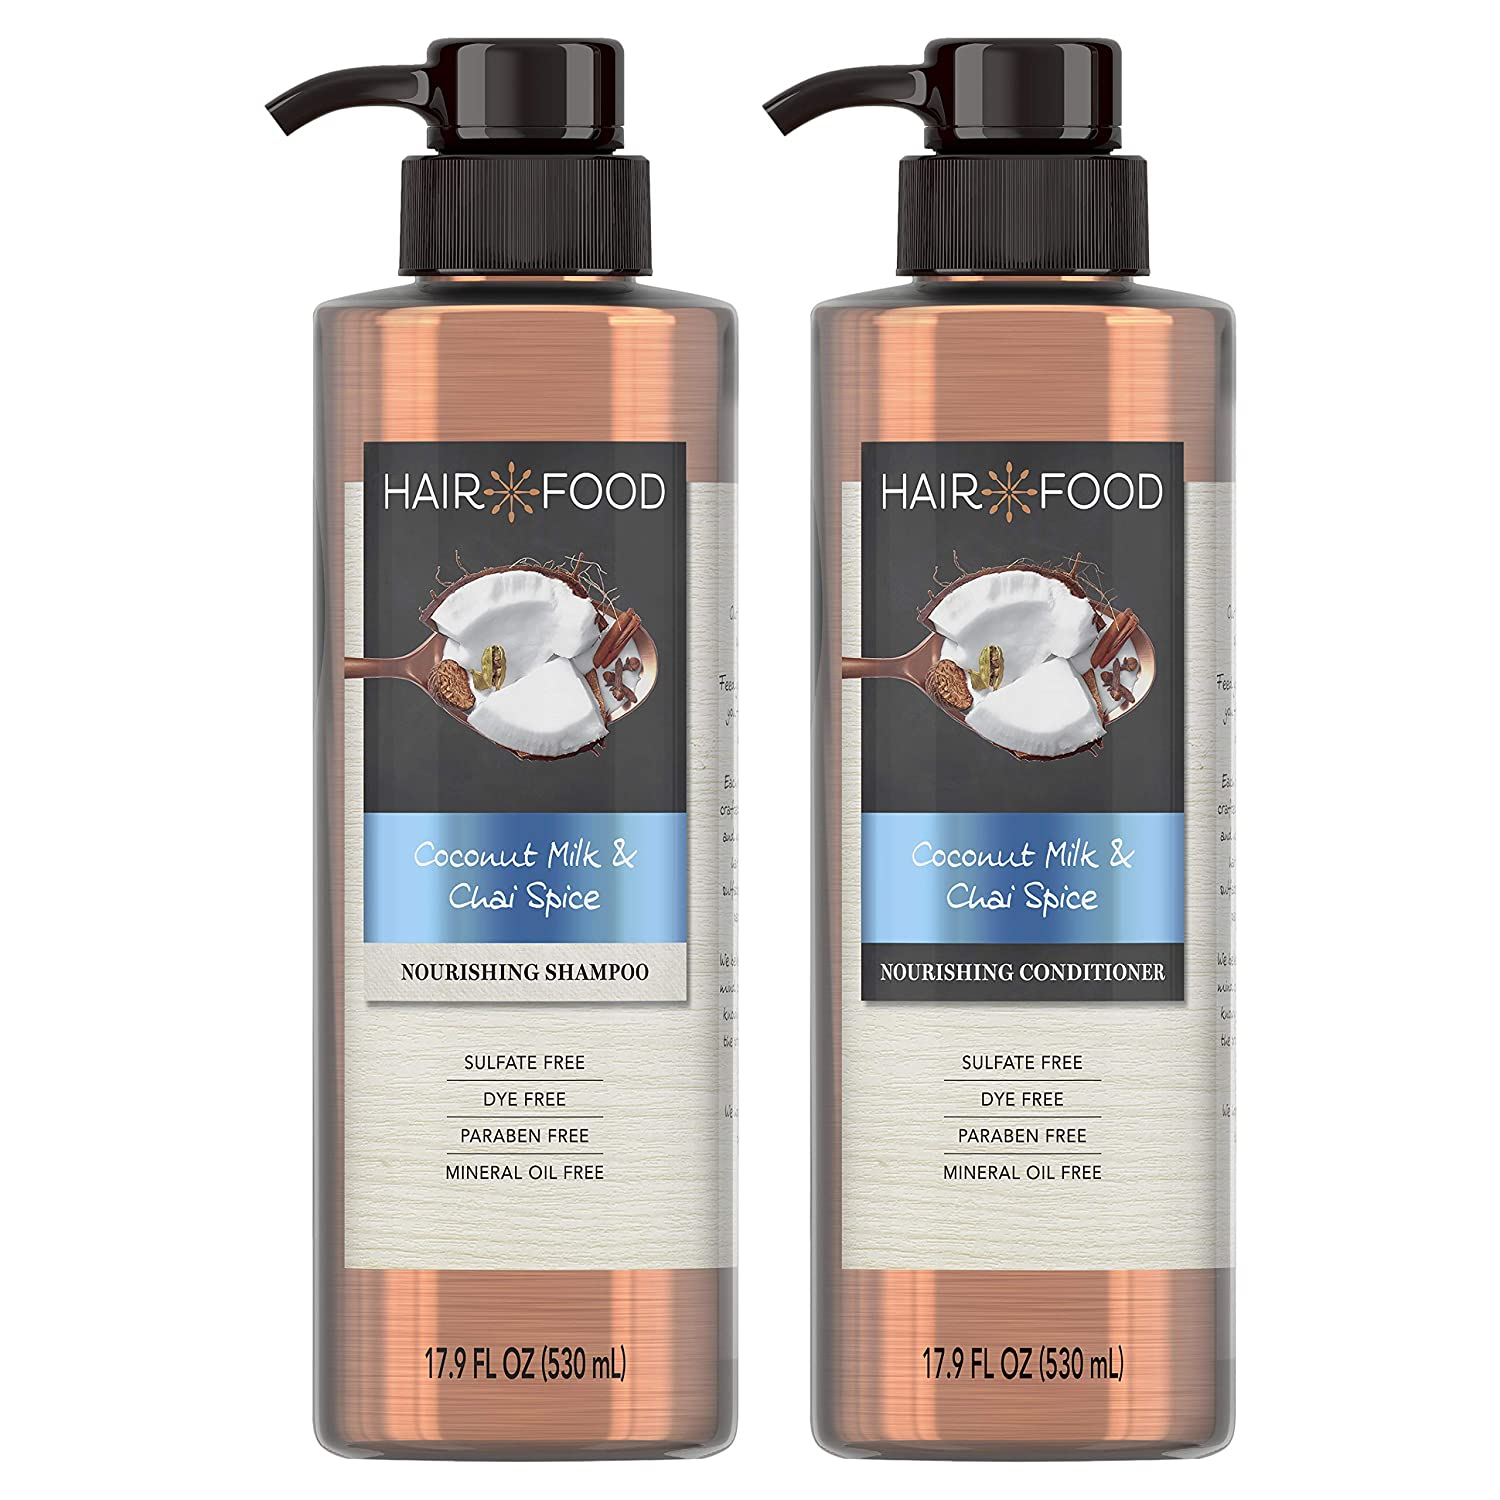 Hair Food Sulfate Free Nourishing Shampoo and Conditioner, Infused with Coconut Milk & Chai Spice, Dye Free, 17.9 Oz, Bundle